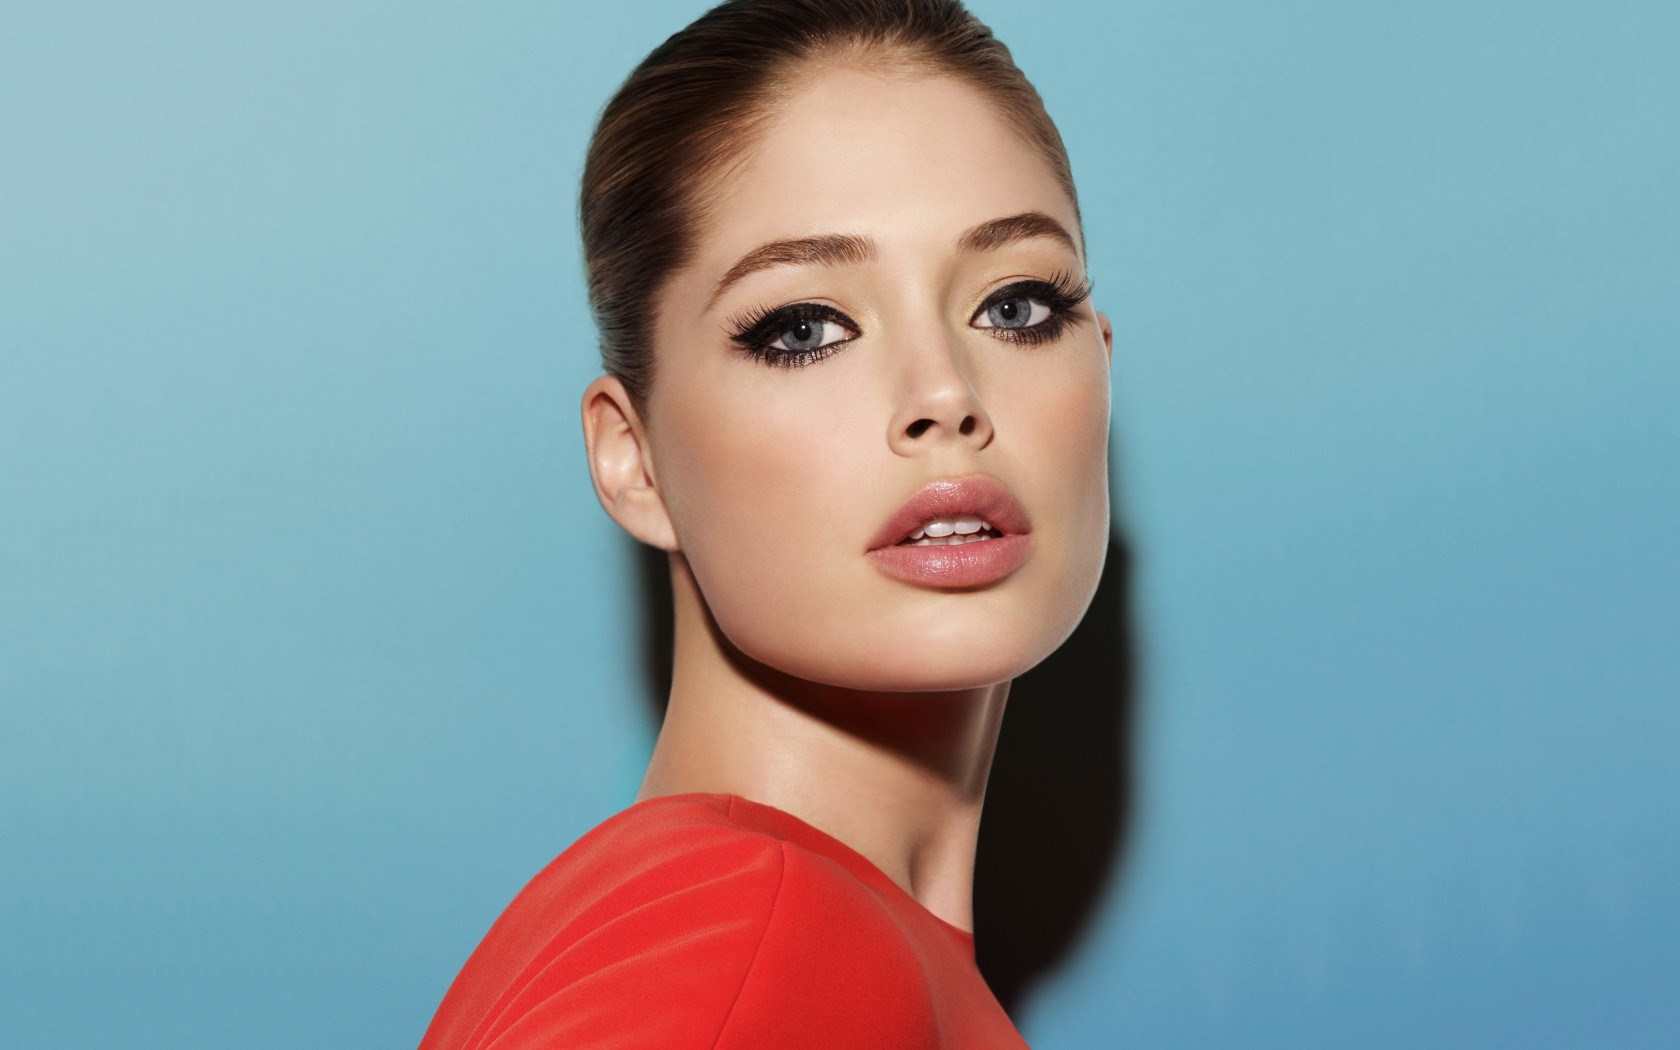 Doutzen Kroes Model Actress Girl